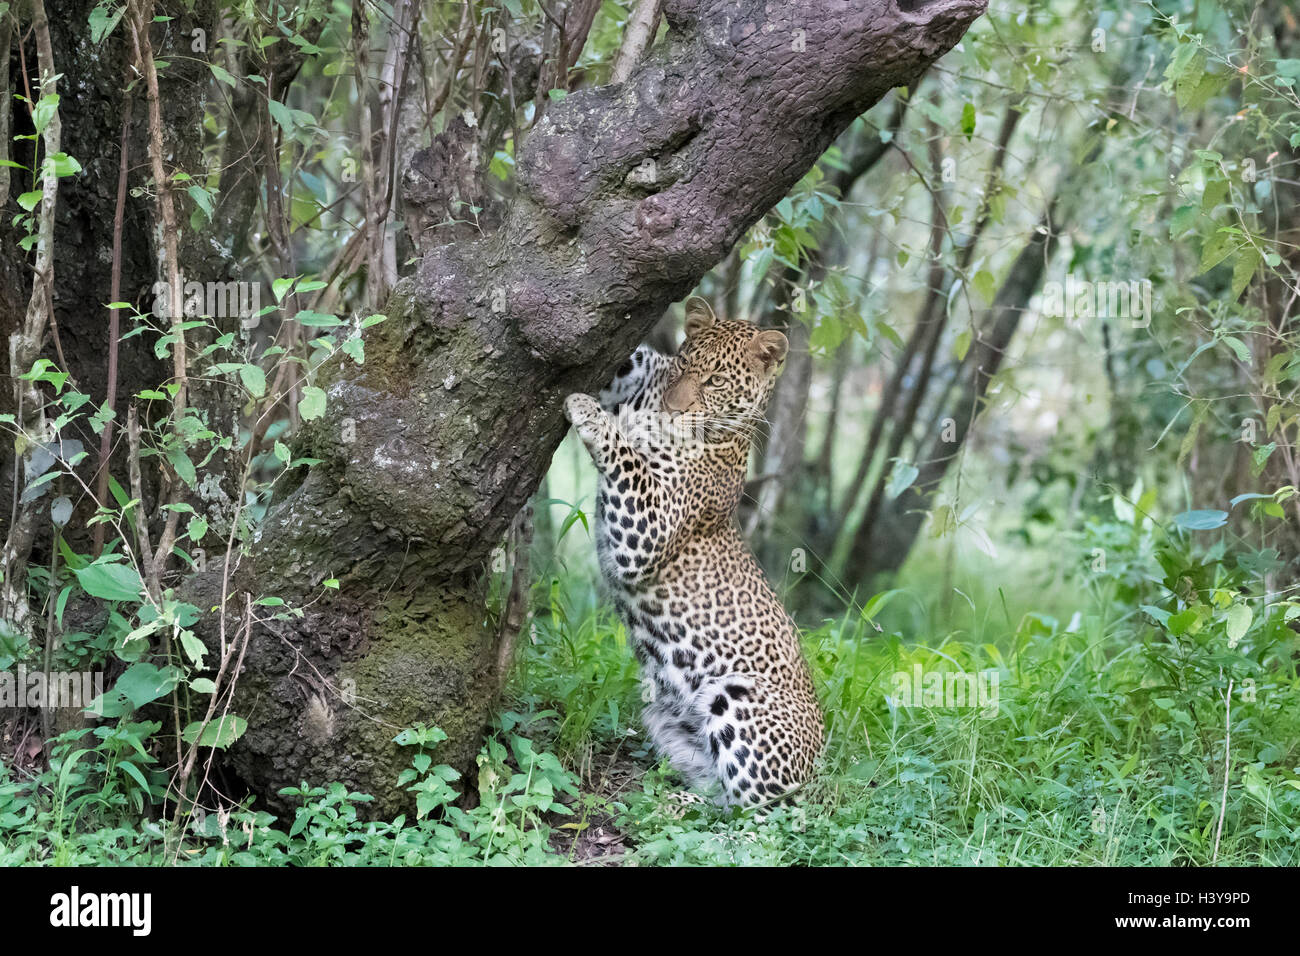 African Leopard (Panthera pardus) marking tree for territory in forest, Masai Mara national reserve, Kenya. - Stock Image